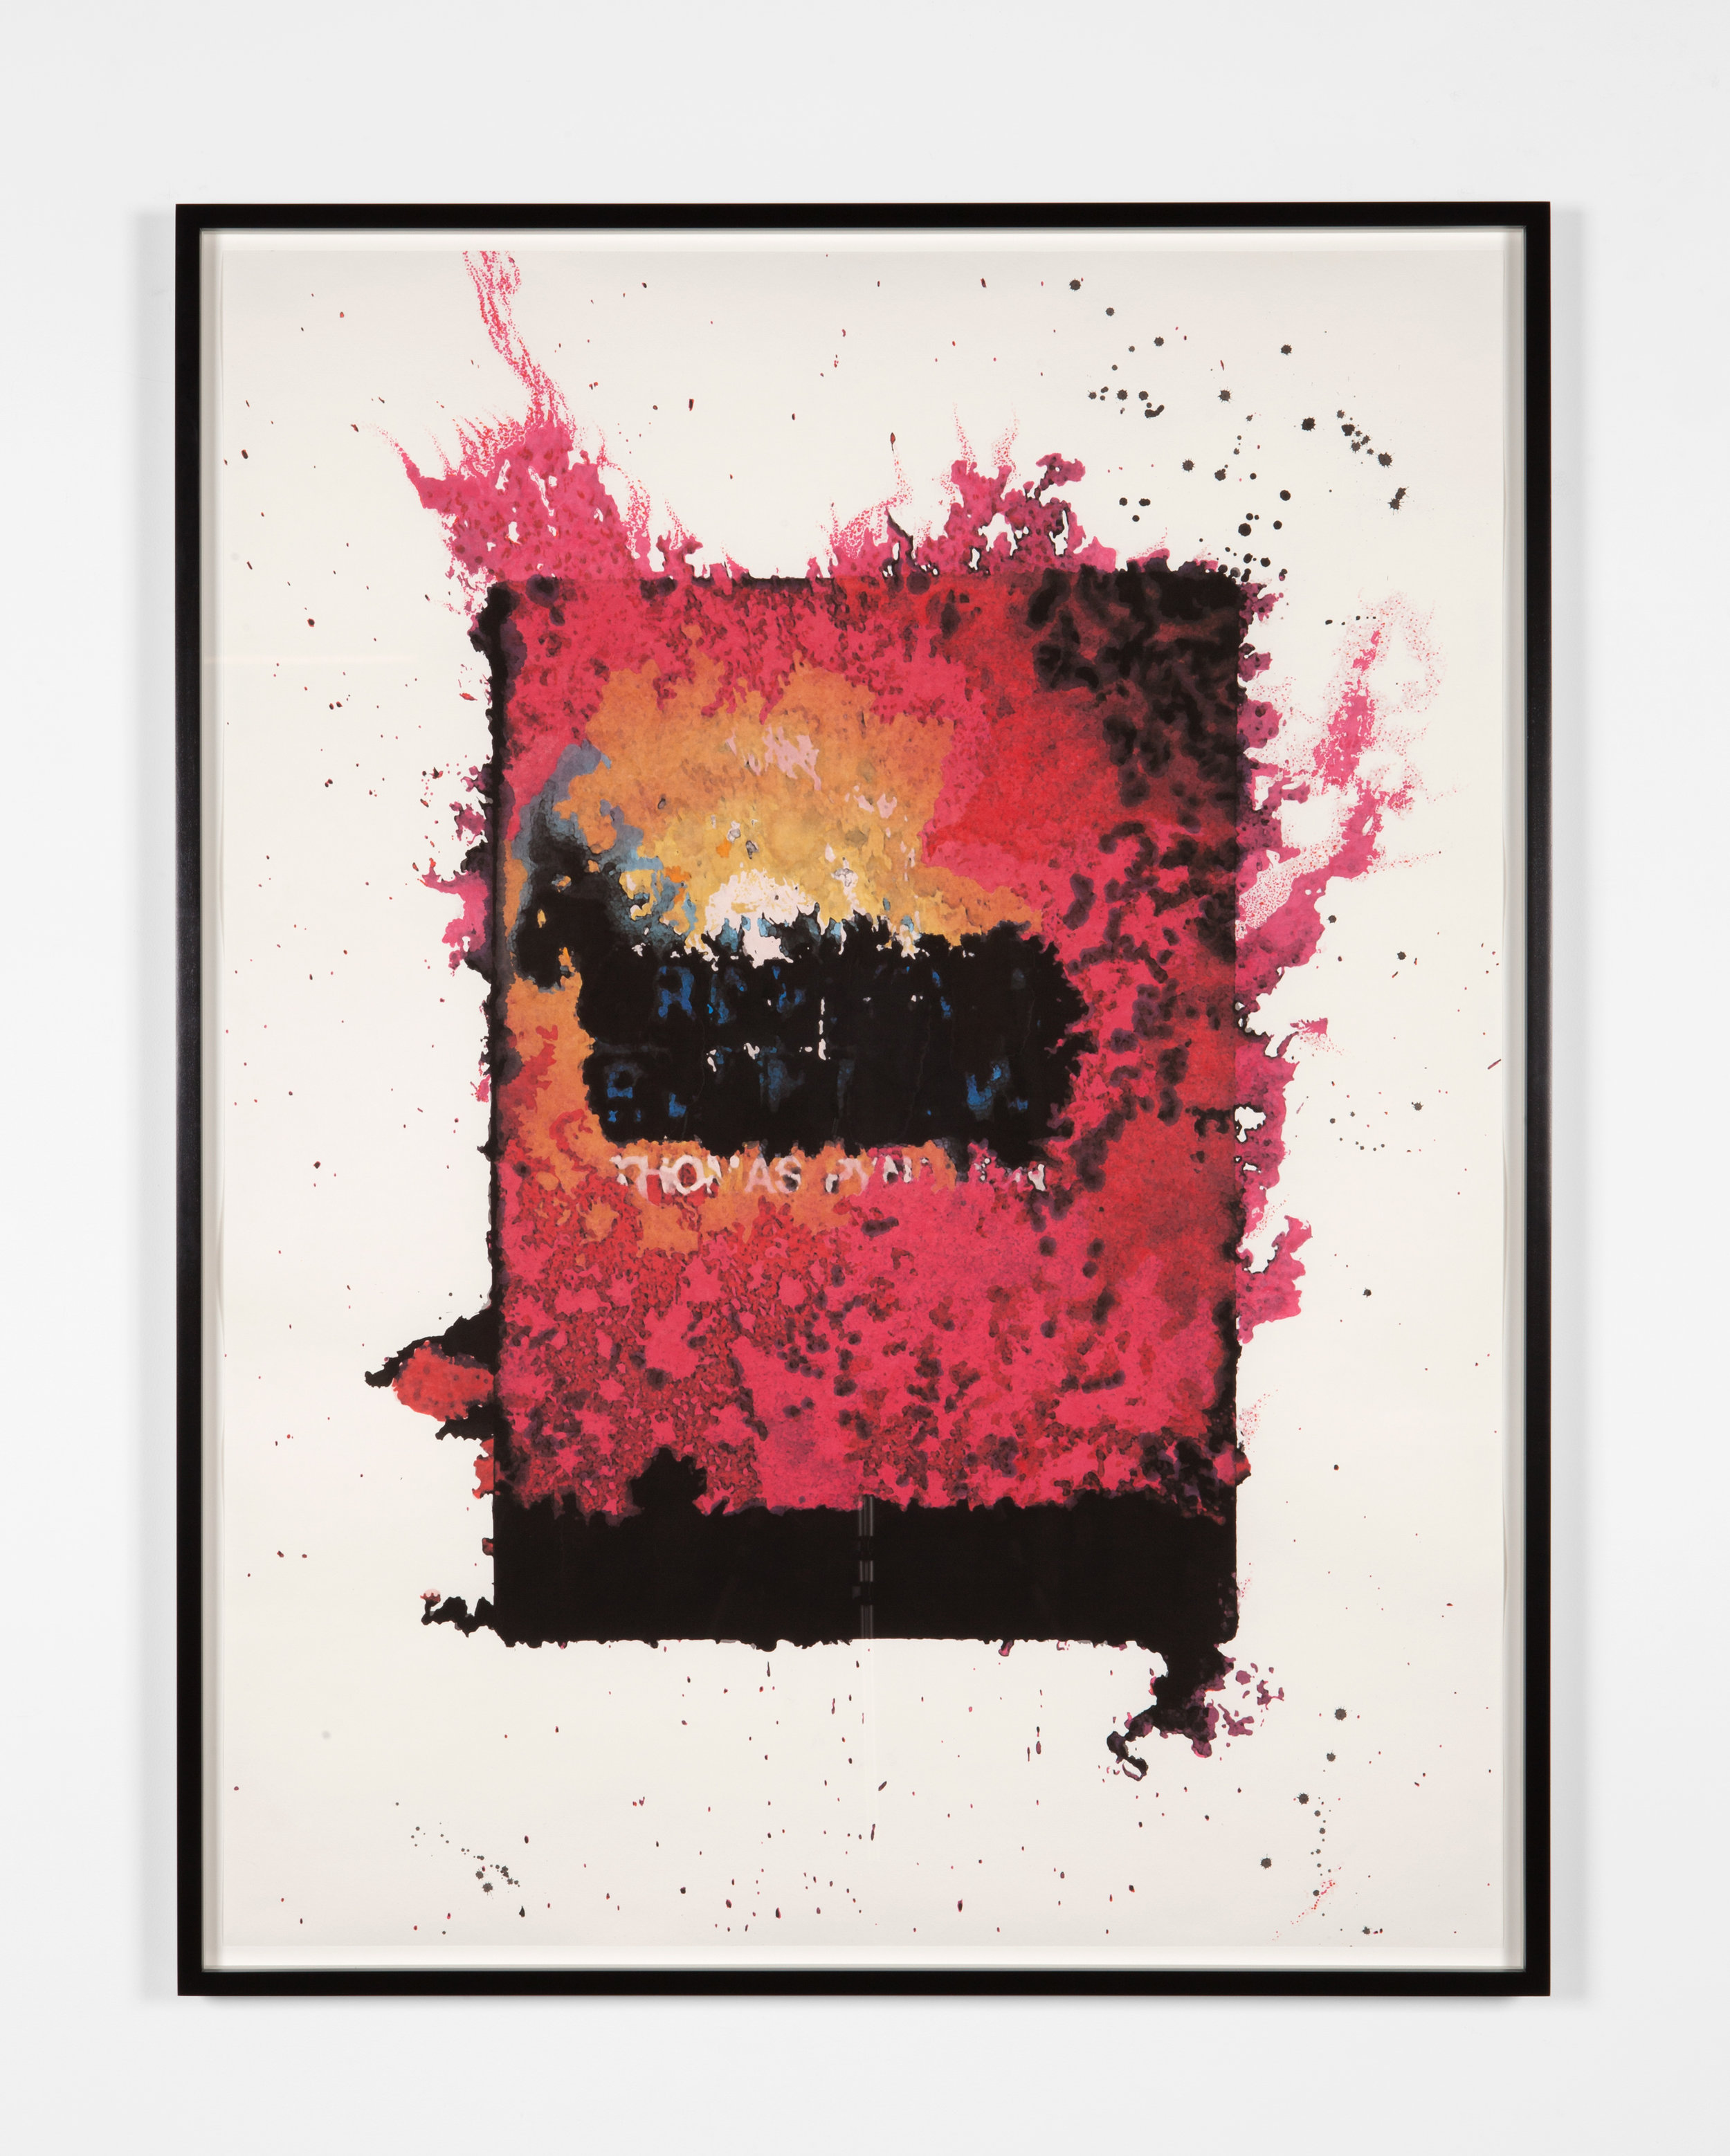 Drew Heitzler  Pacific Palisades (Gravity's Rainbow #1) , 2015 Solvent and water-based ink on Arches 52 x 39 in. Courtesy of the artist and Blum & Poe, Los Angeles/New York/Tokyo   View on Artsy